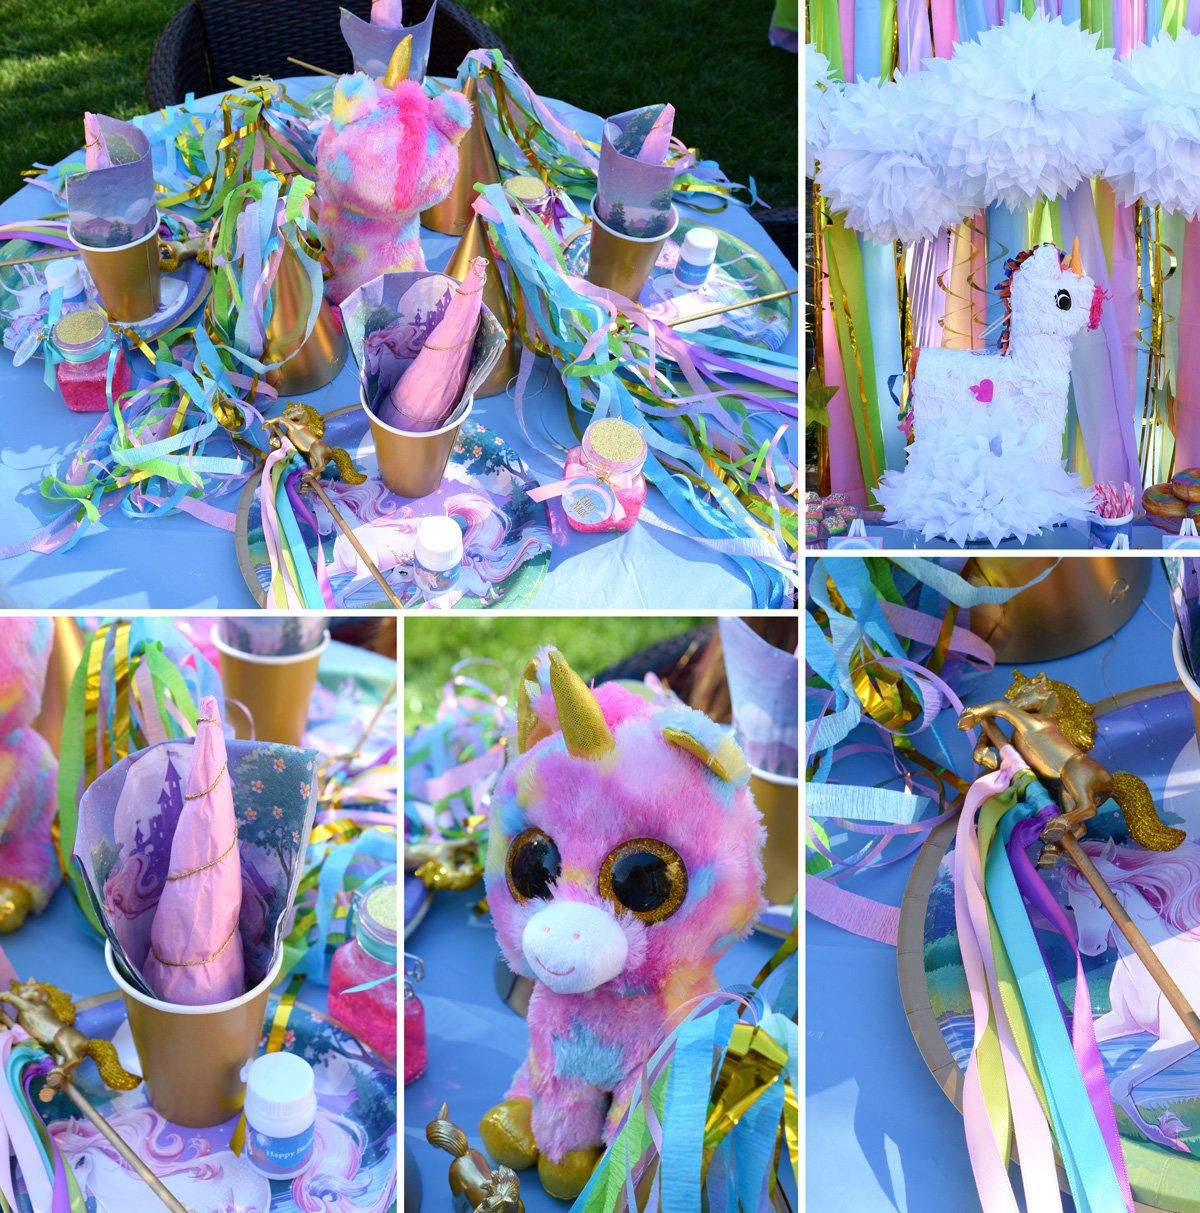 Lights In Bedroom Ideas Unicorn Party Ideas Fairytale Party Ideas At Birthday In